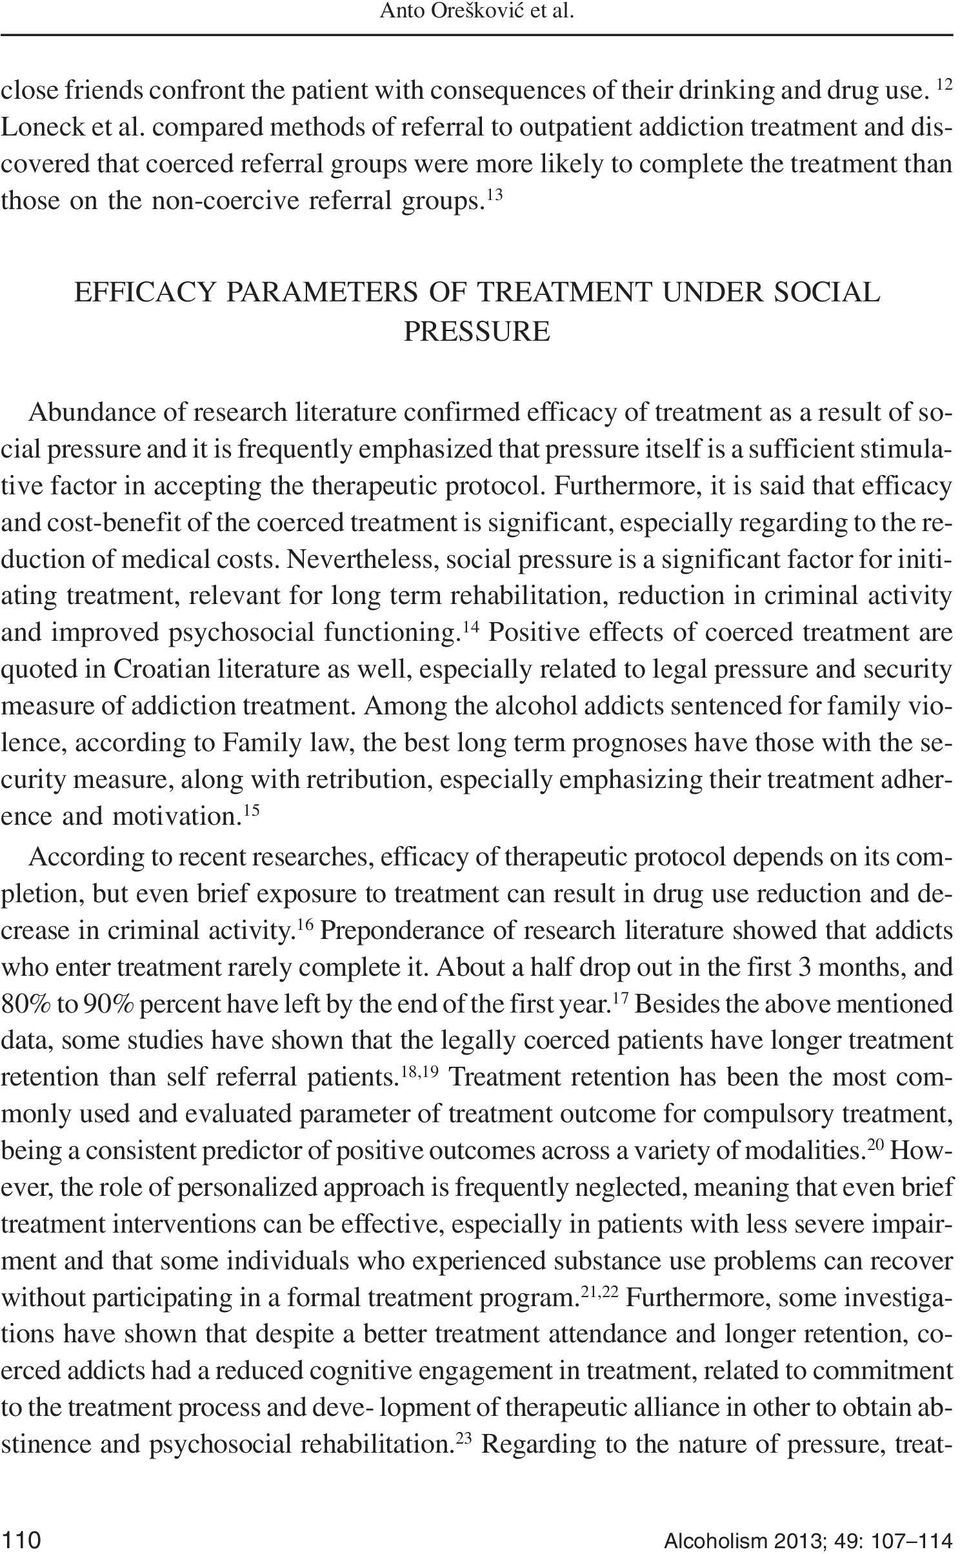 13 EFFICACY PARAMETERS OF TREATMENT UNDER SOCIAL PRESSURE Abundance of research literature confirmed efficacy of treatment as a result of social pressure and it is frequently emphasized that pressure